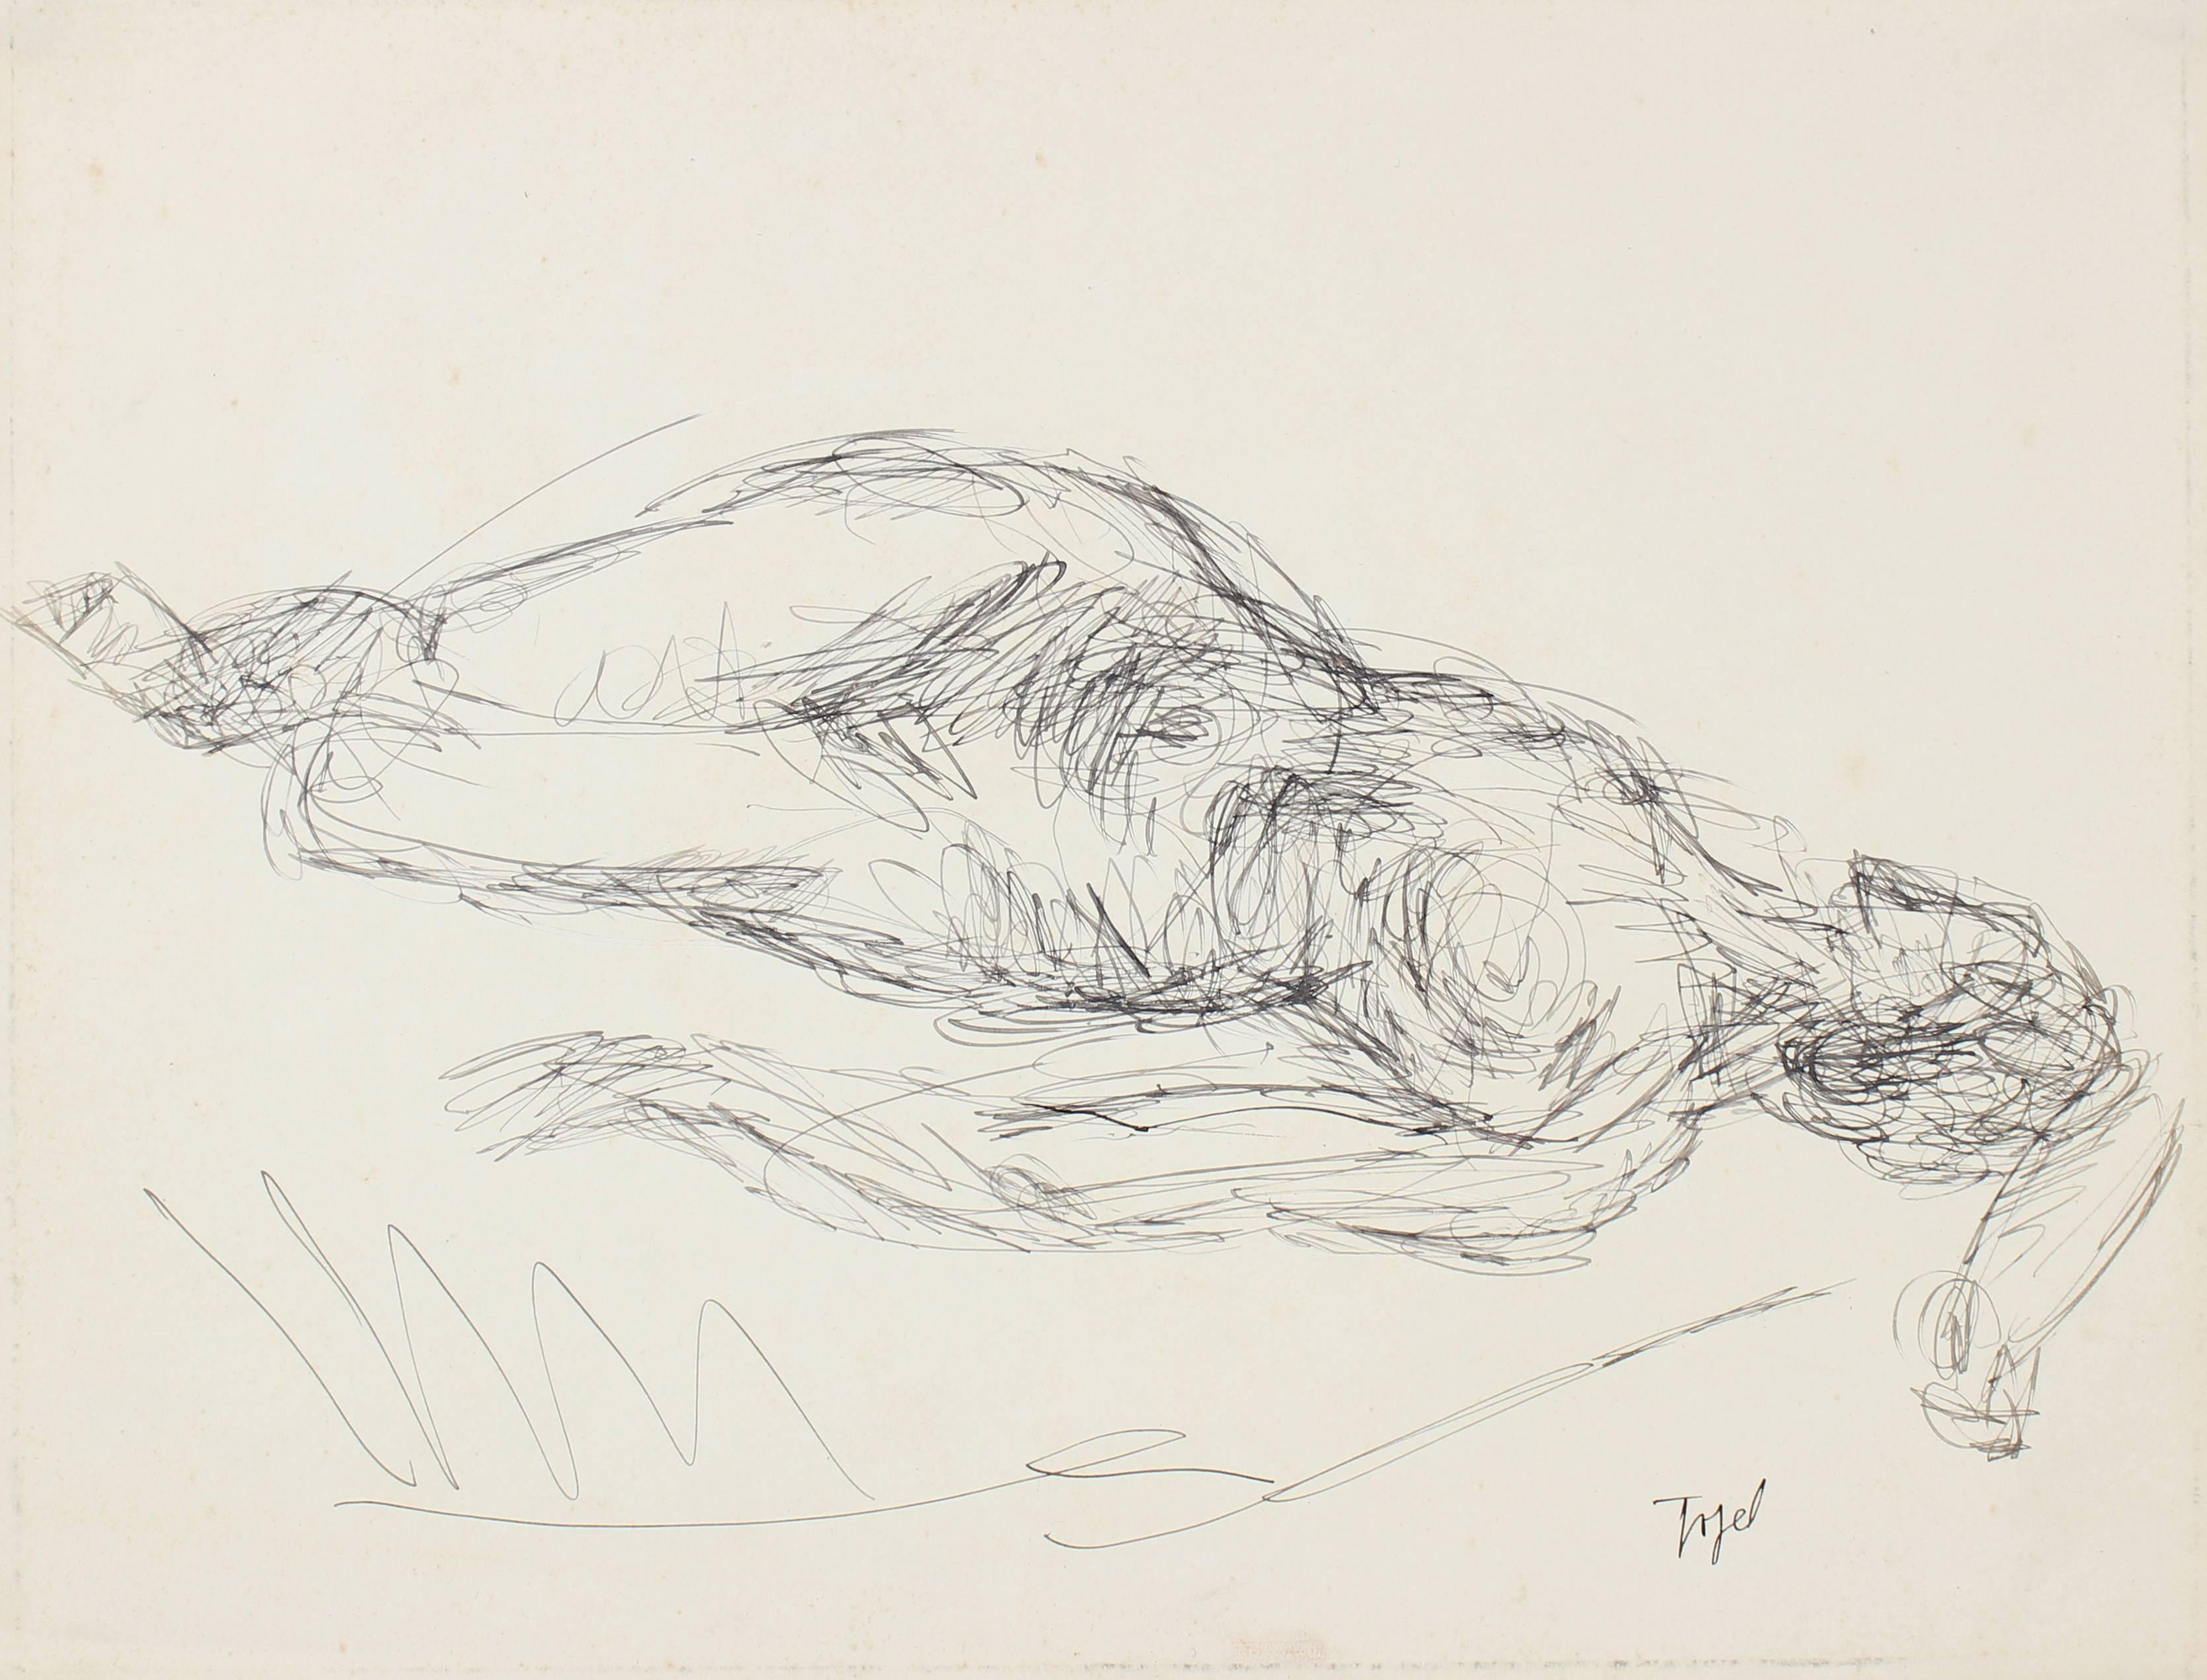 Reclining Female Figure in Ink, Early 20th Century